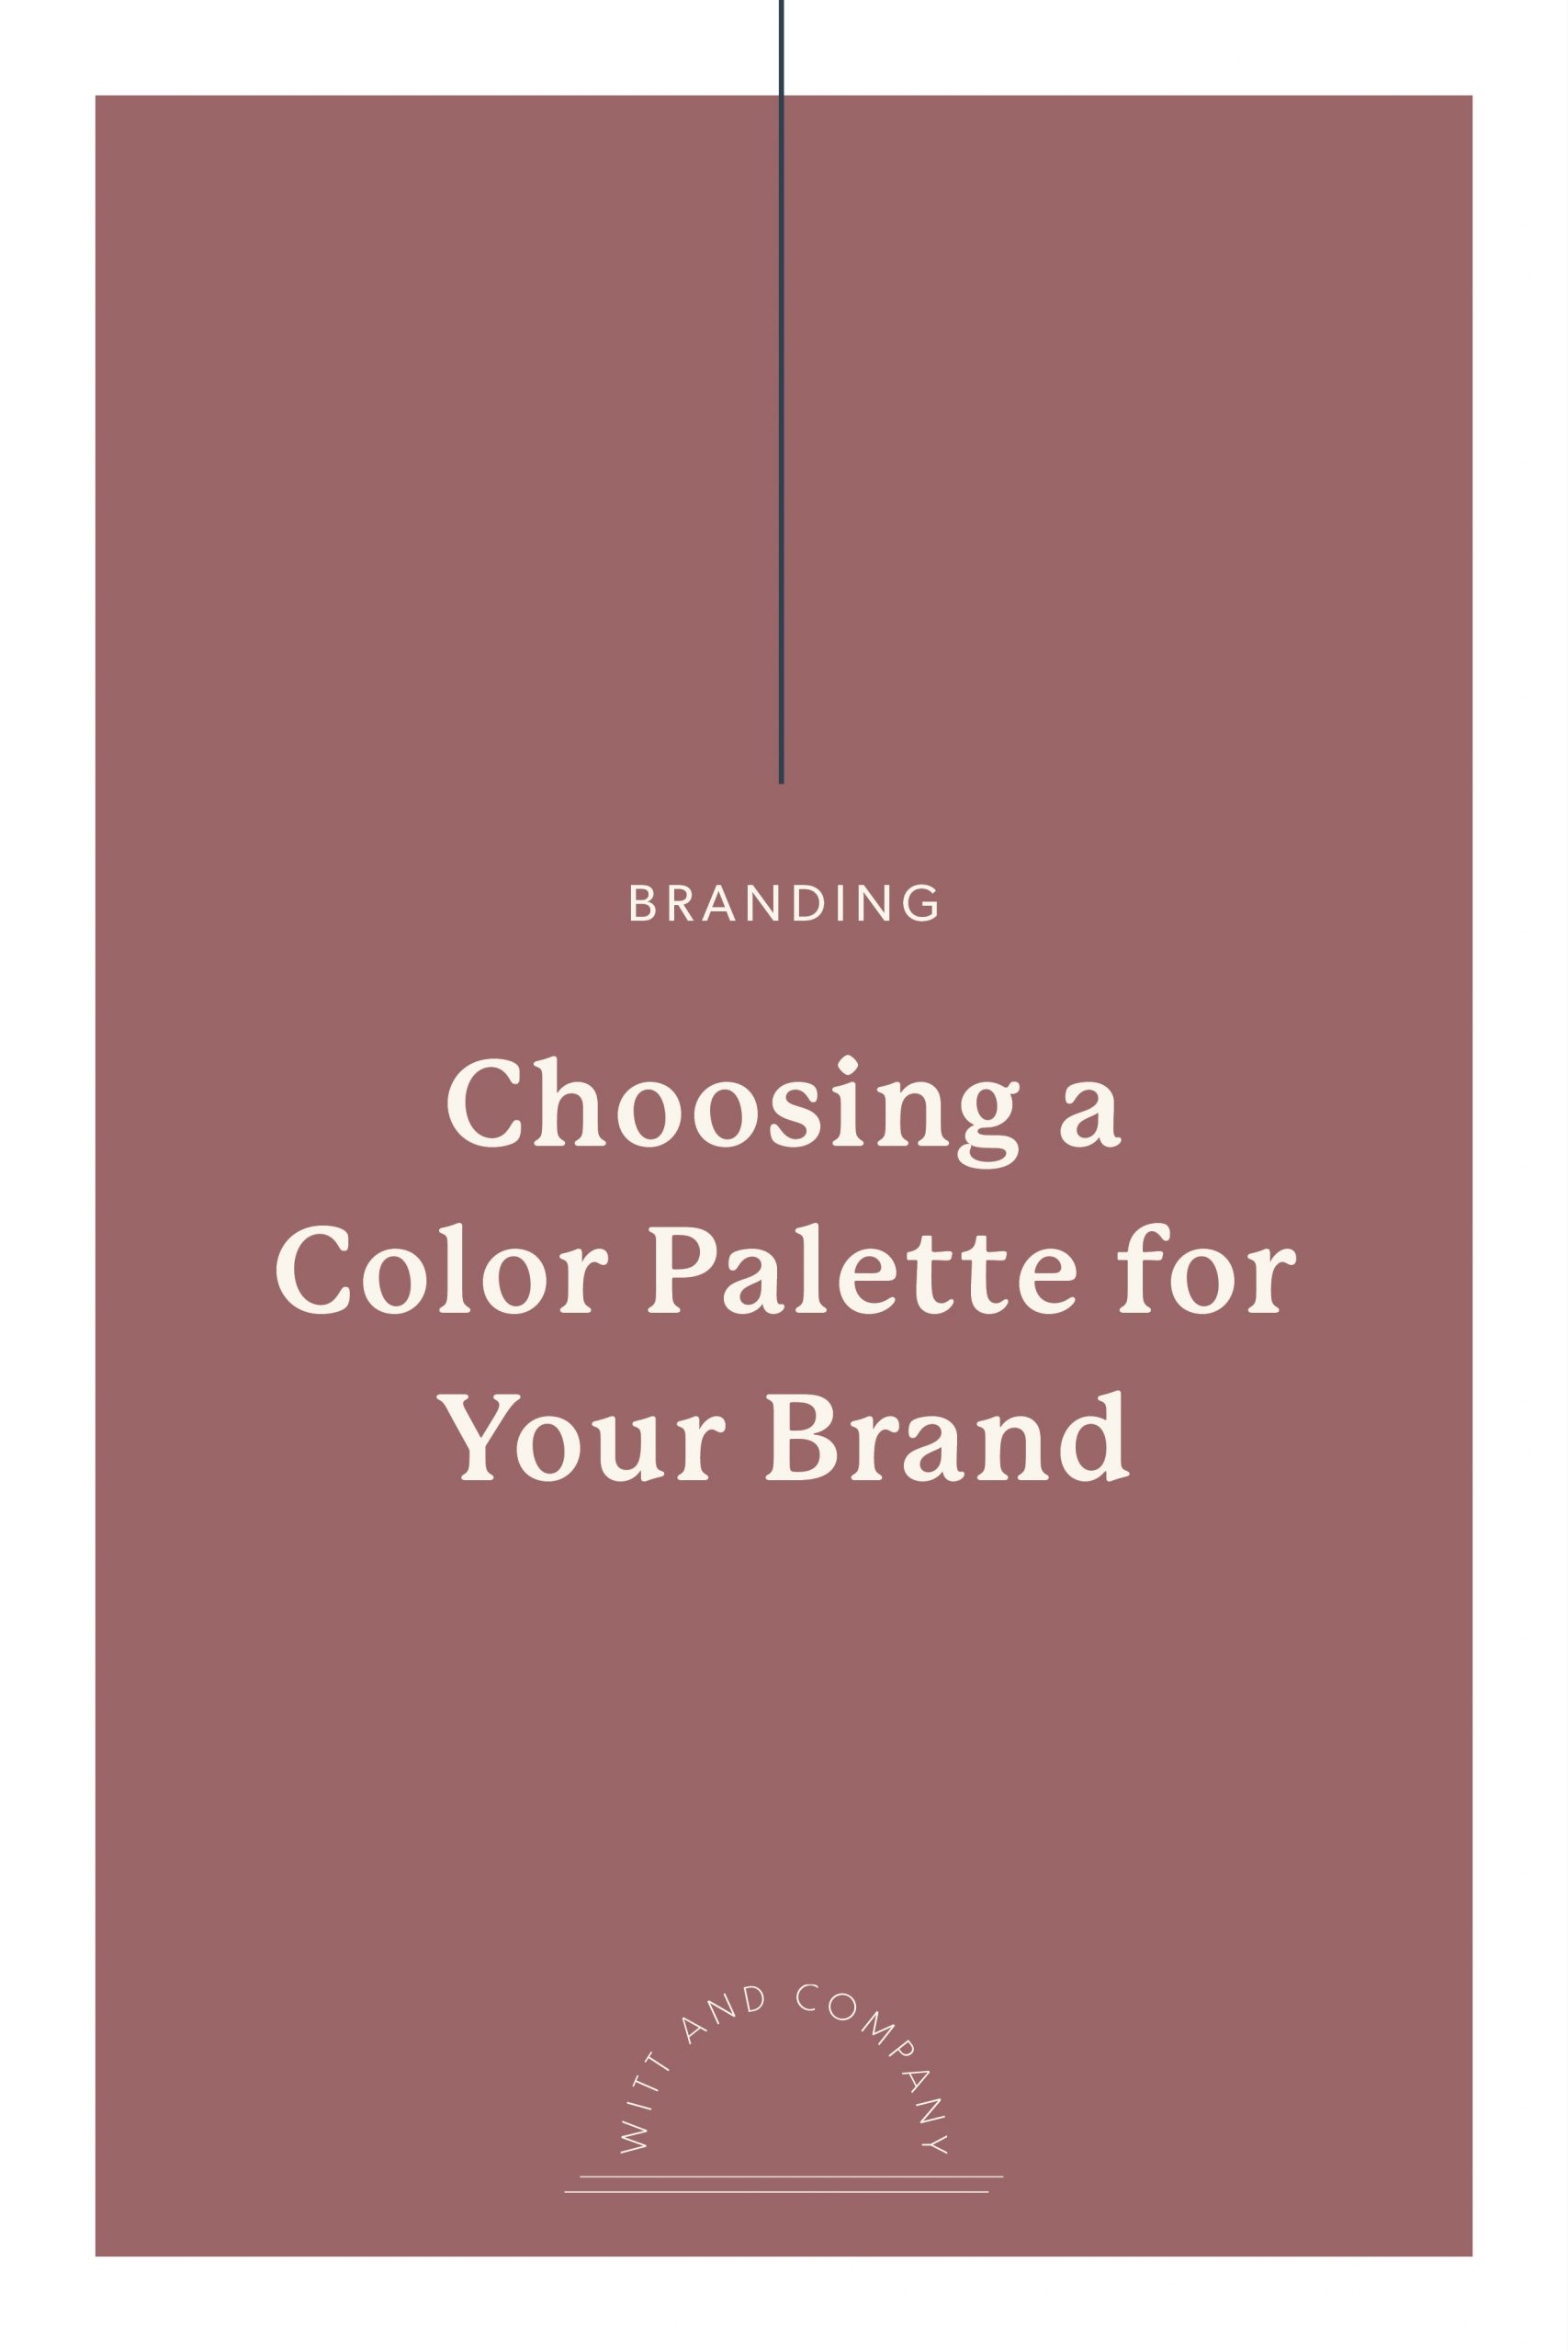 Creating the Right Color Palette for Your Brand